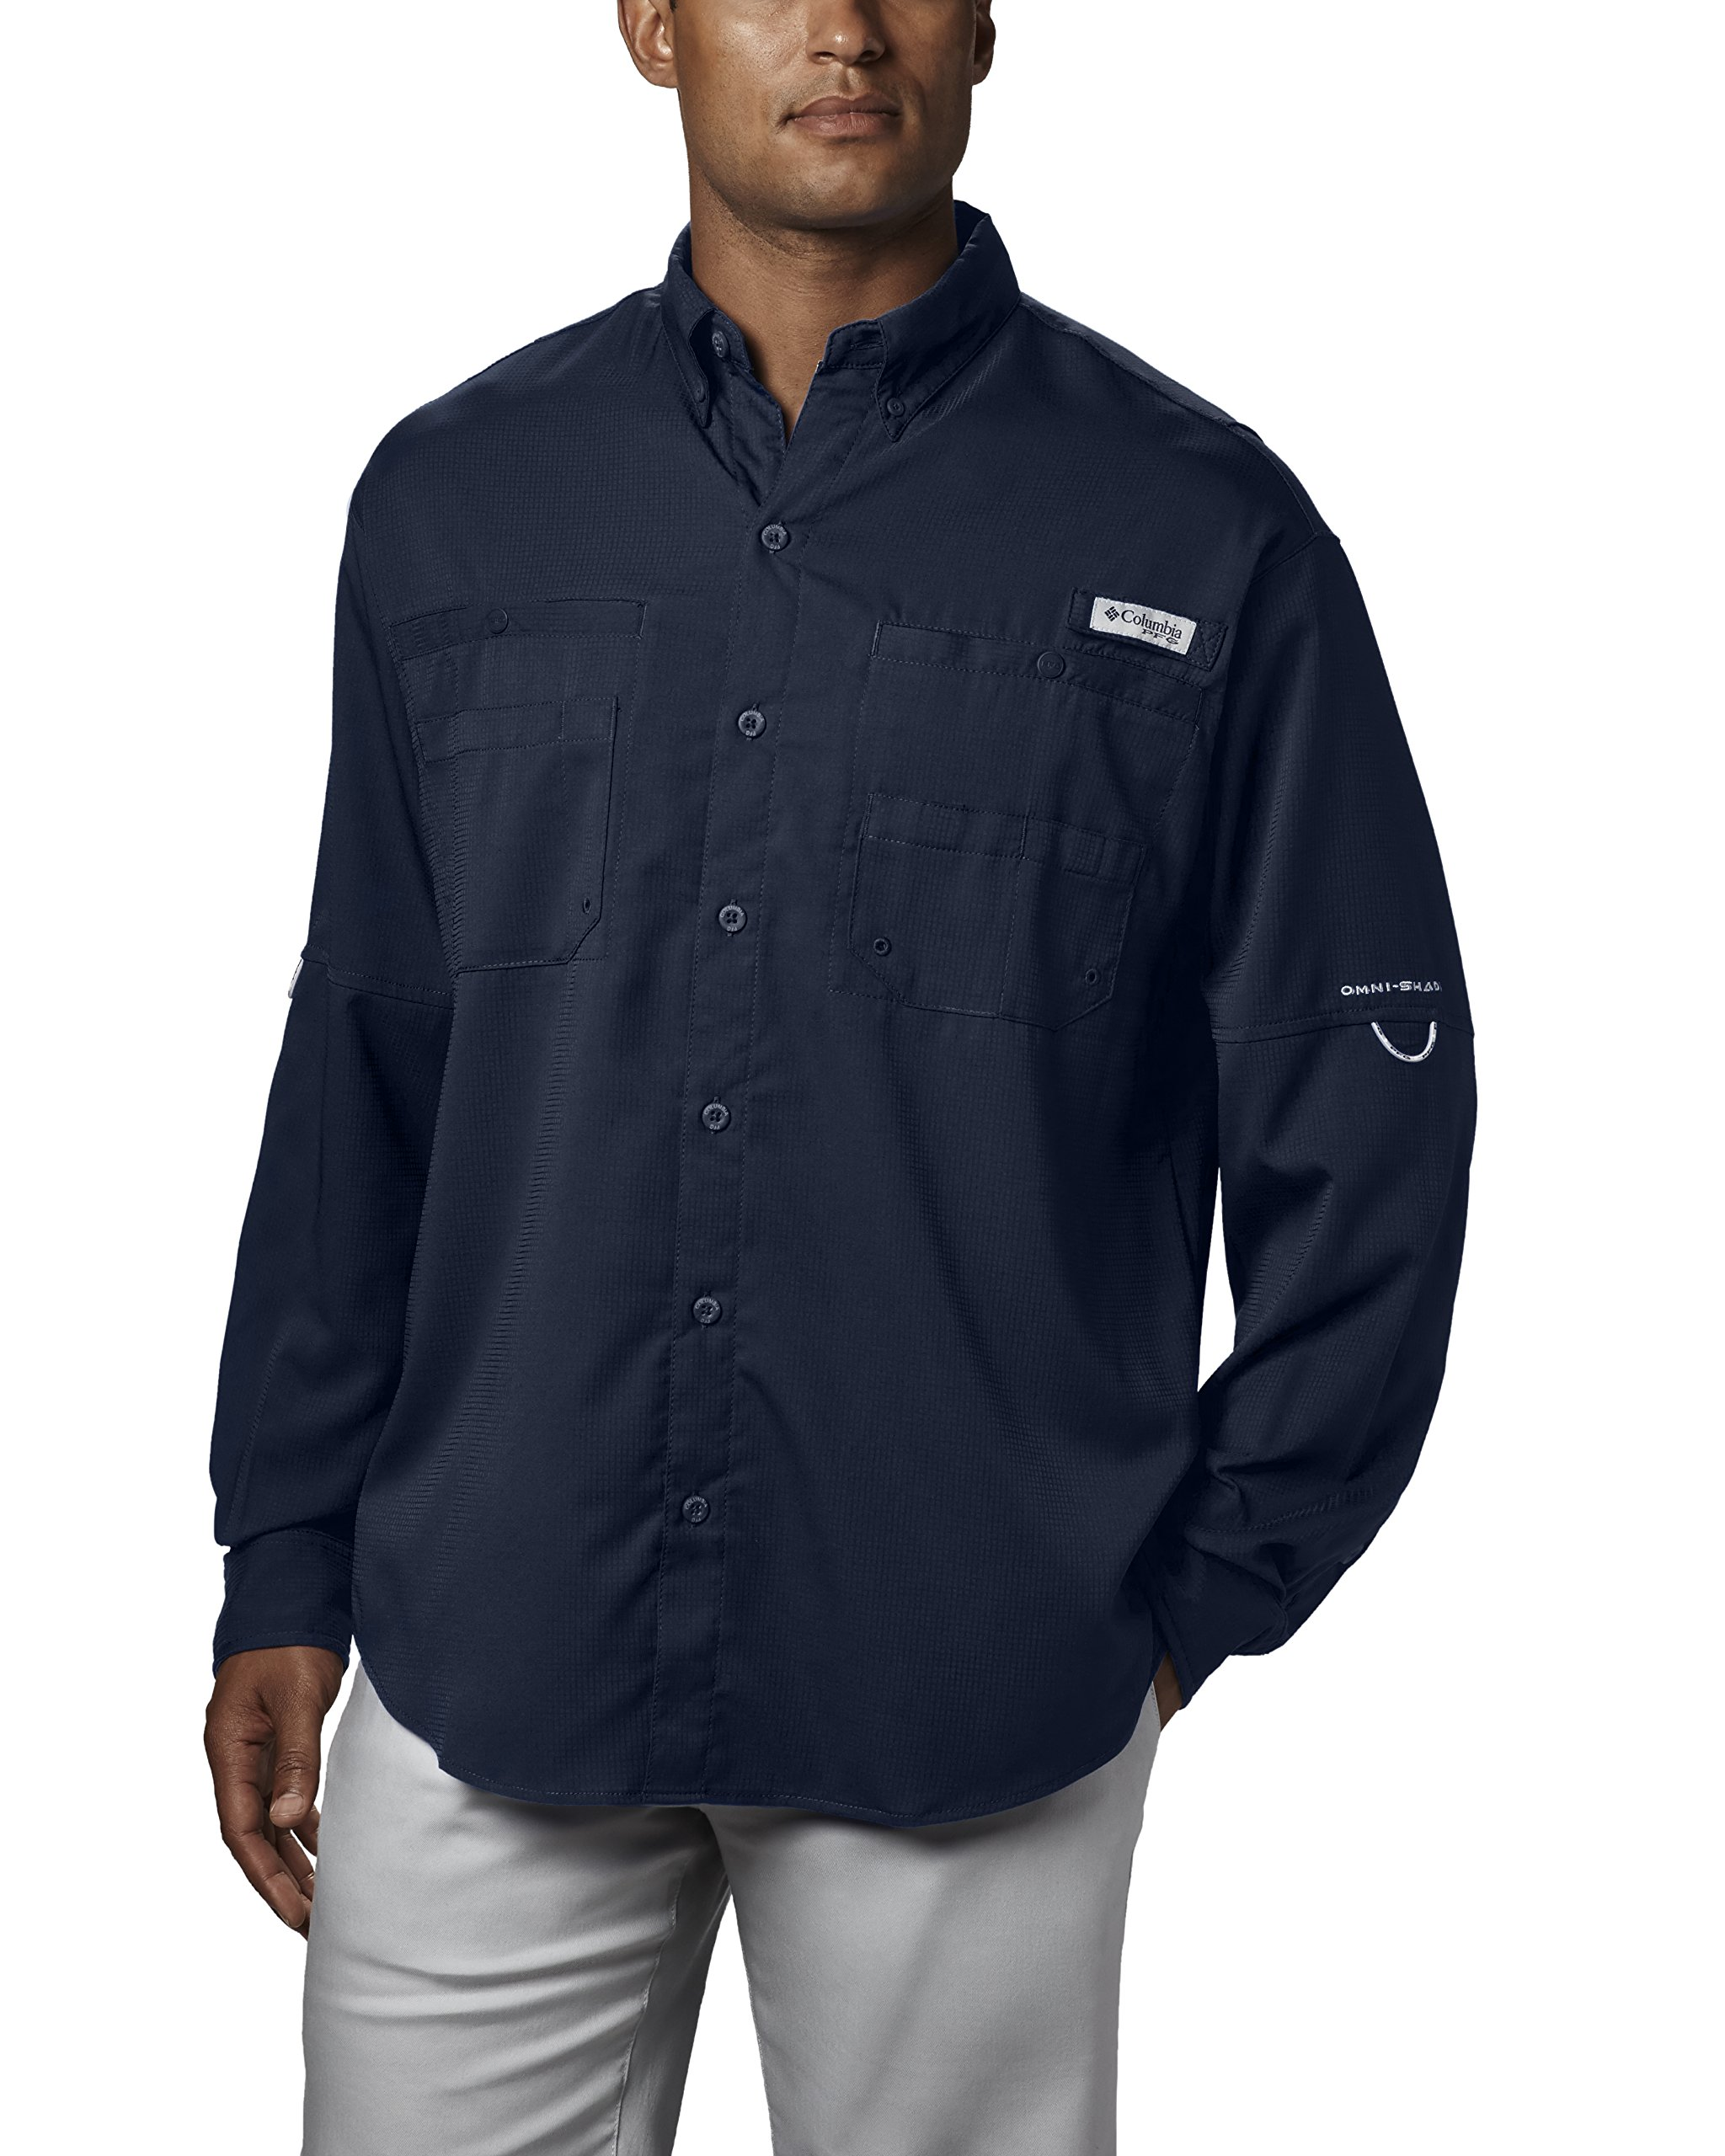 Columbia Men's Plus Tamiami II Long Sleeve Shirt, Collegiate Navy - X-Small